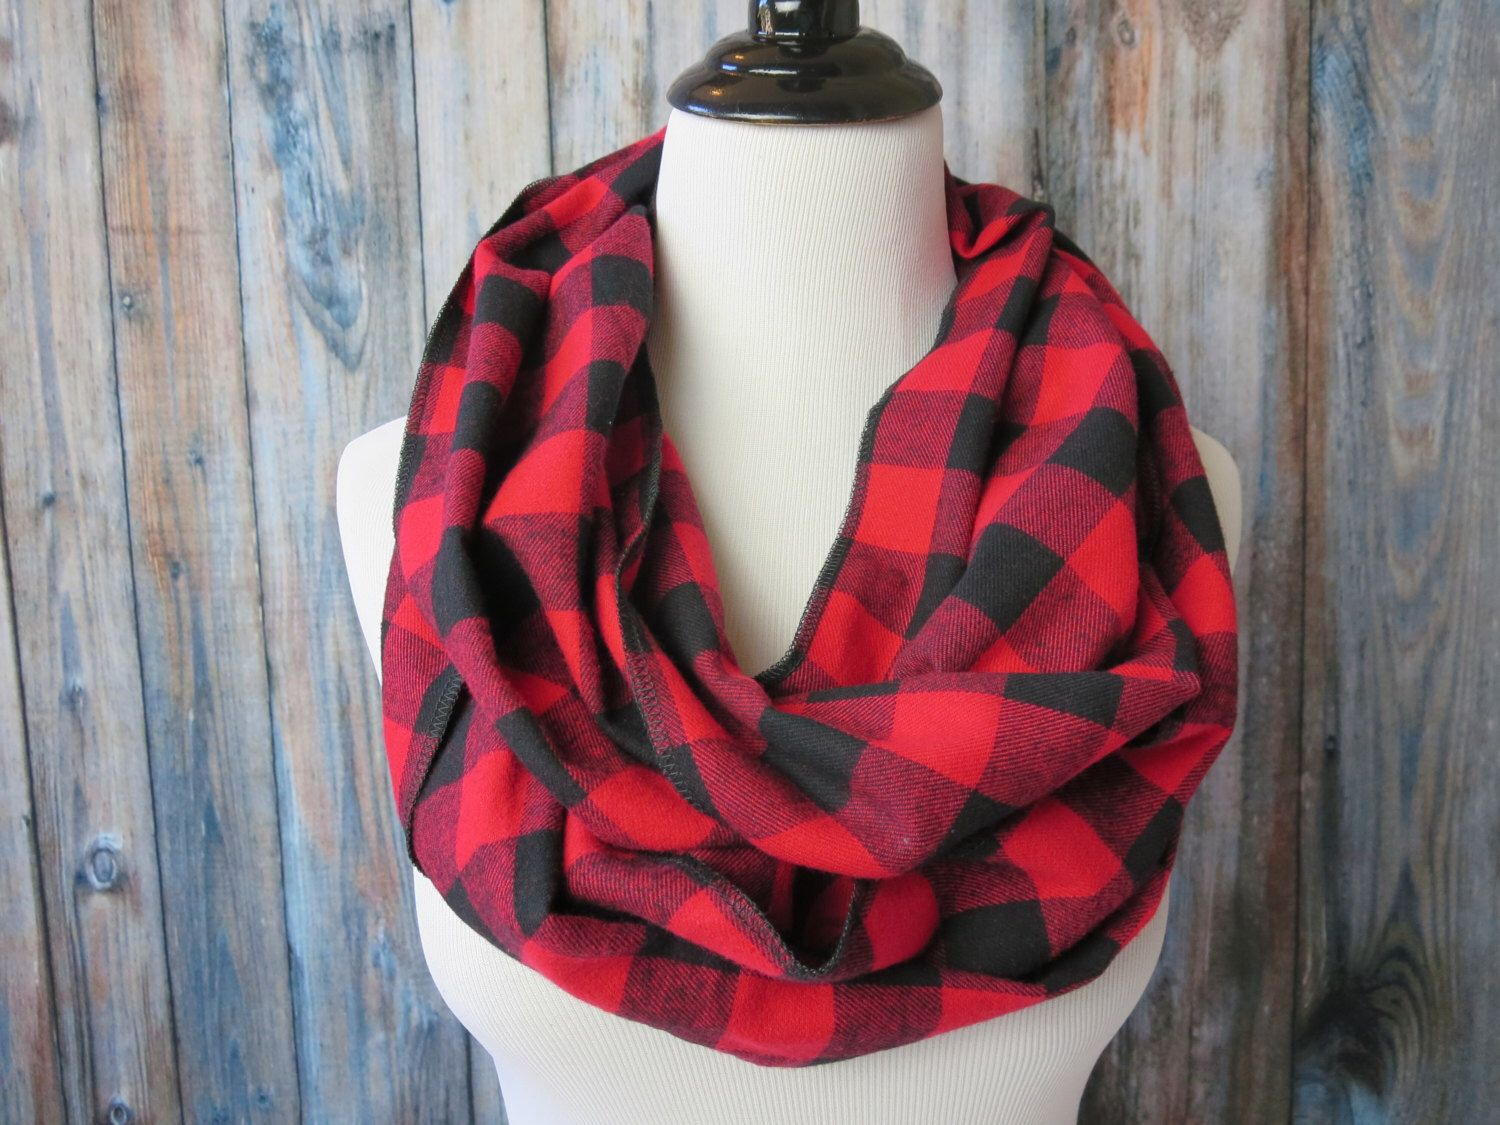 89f40697e Red & Black Buffalo Check Scarf - Red Buffalo Plaid Scarf - Red Plaid  Flannel